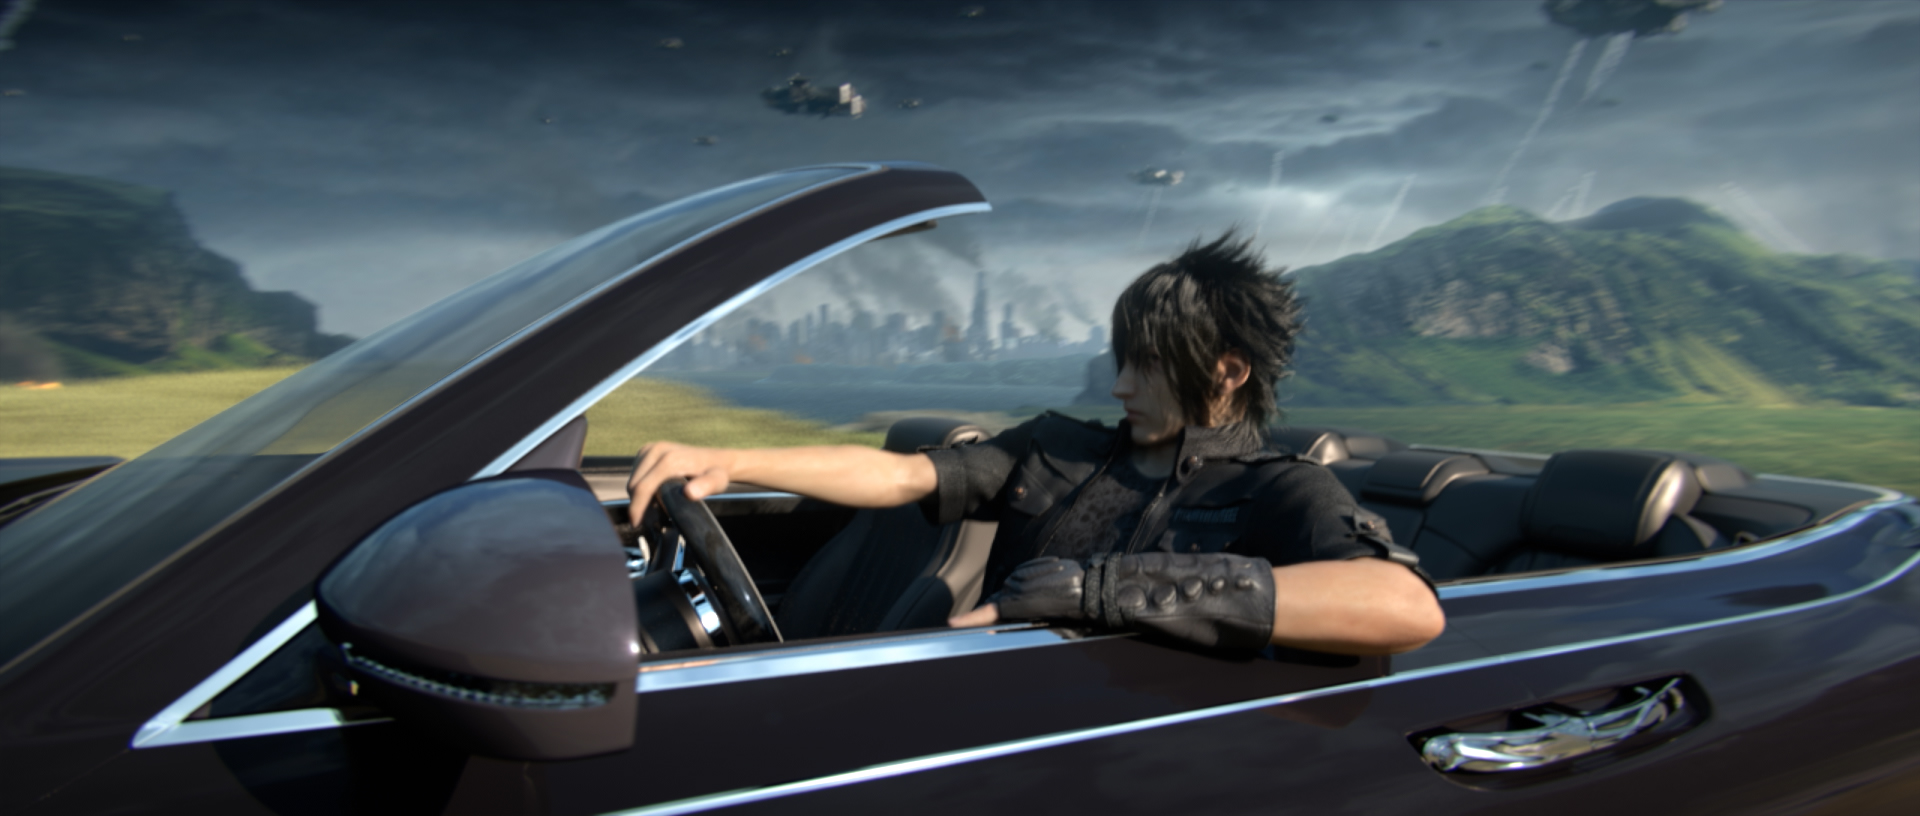 final fantasy xv might be getting more character dlcs